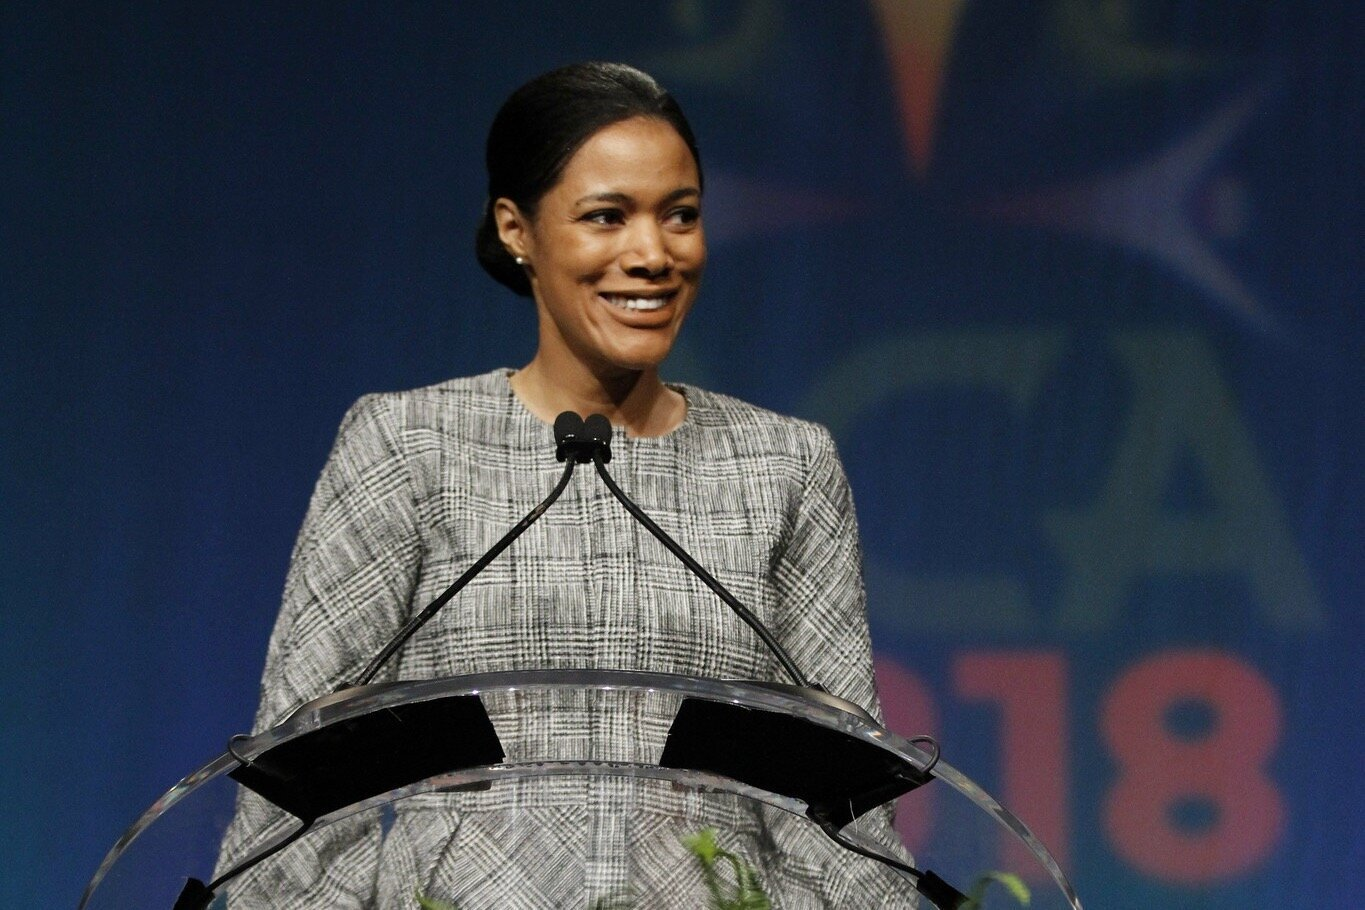 An African American woman with black hair in a low bun smiles at the camera. She is standing behind a podium with a microphone wearing a black and white, plaid, long sleeve dress.